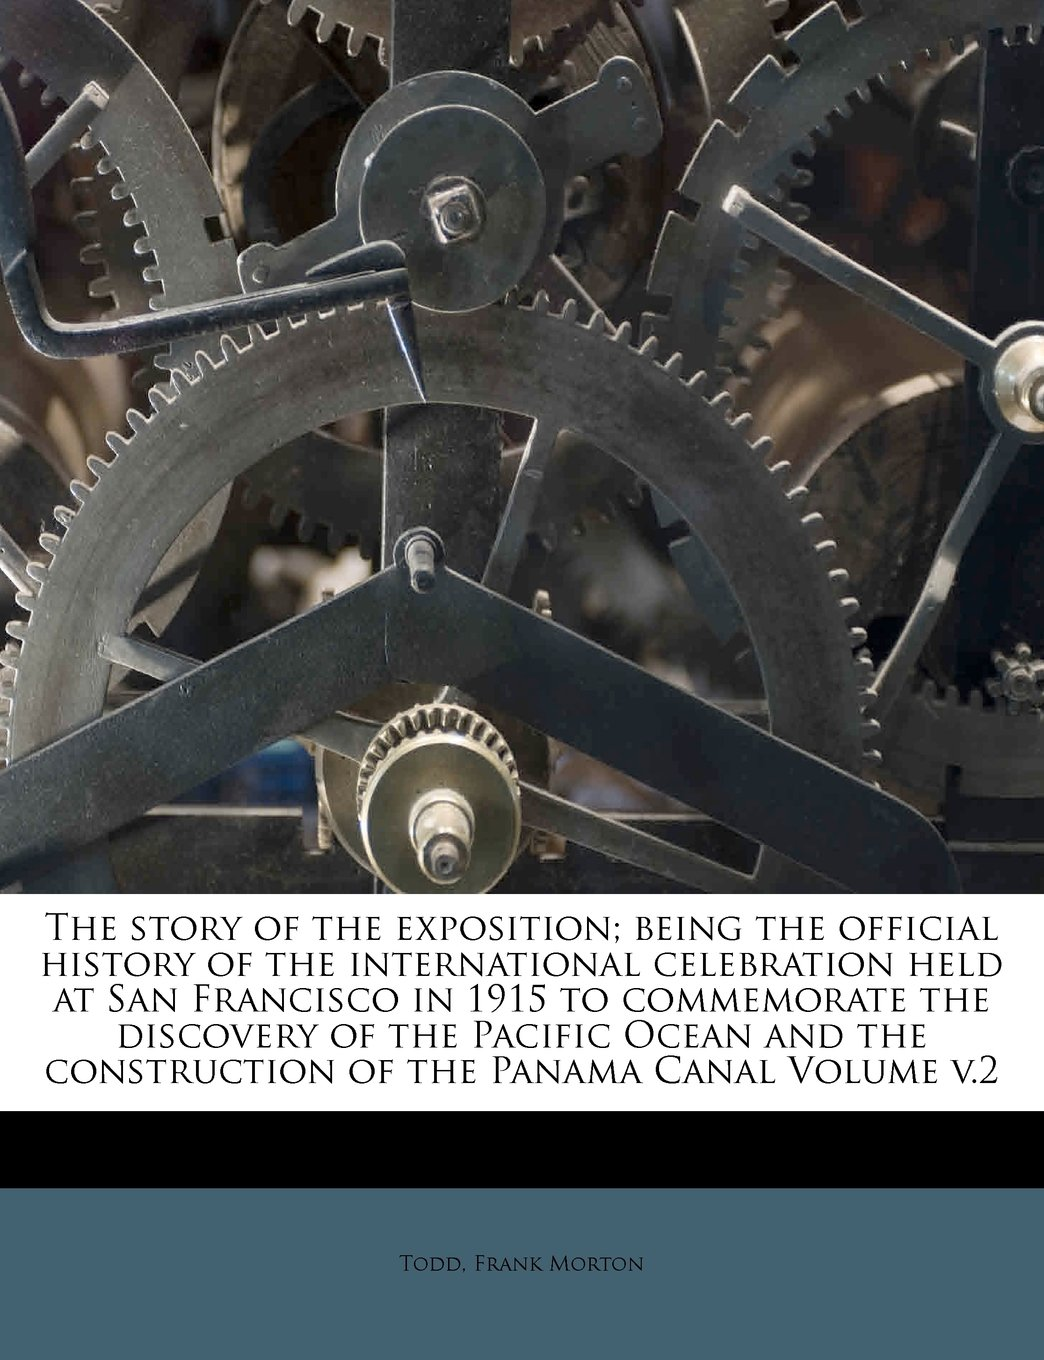 Read Online The story of the exposition; being the official history of the international celebration held at San Francisco in 1915 to commemorate the discovery of ... construction of the Panama Canal Volume v.2 PDF